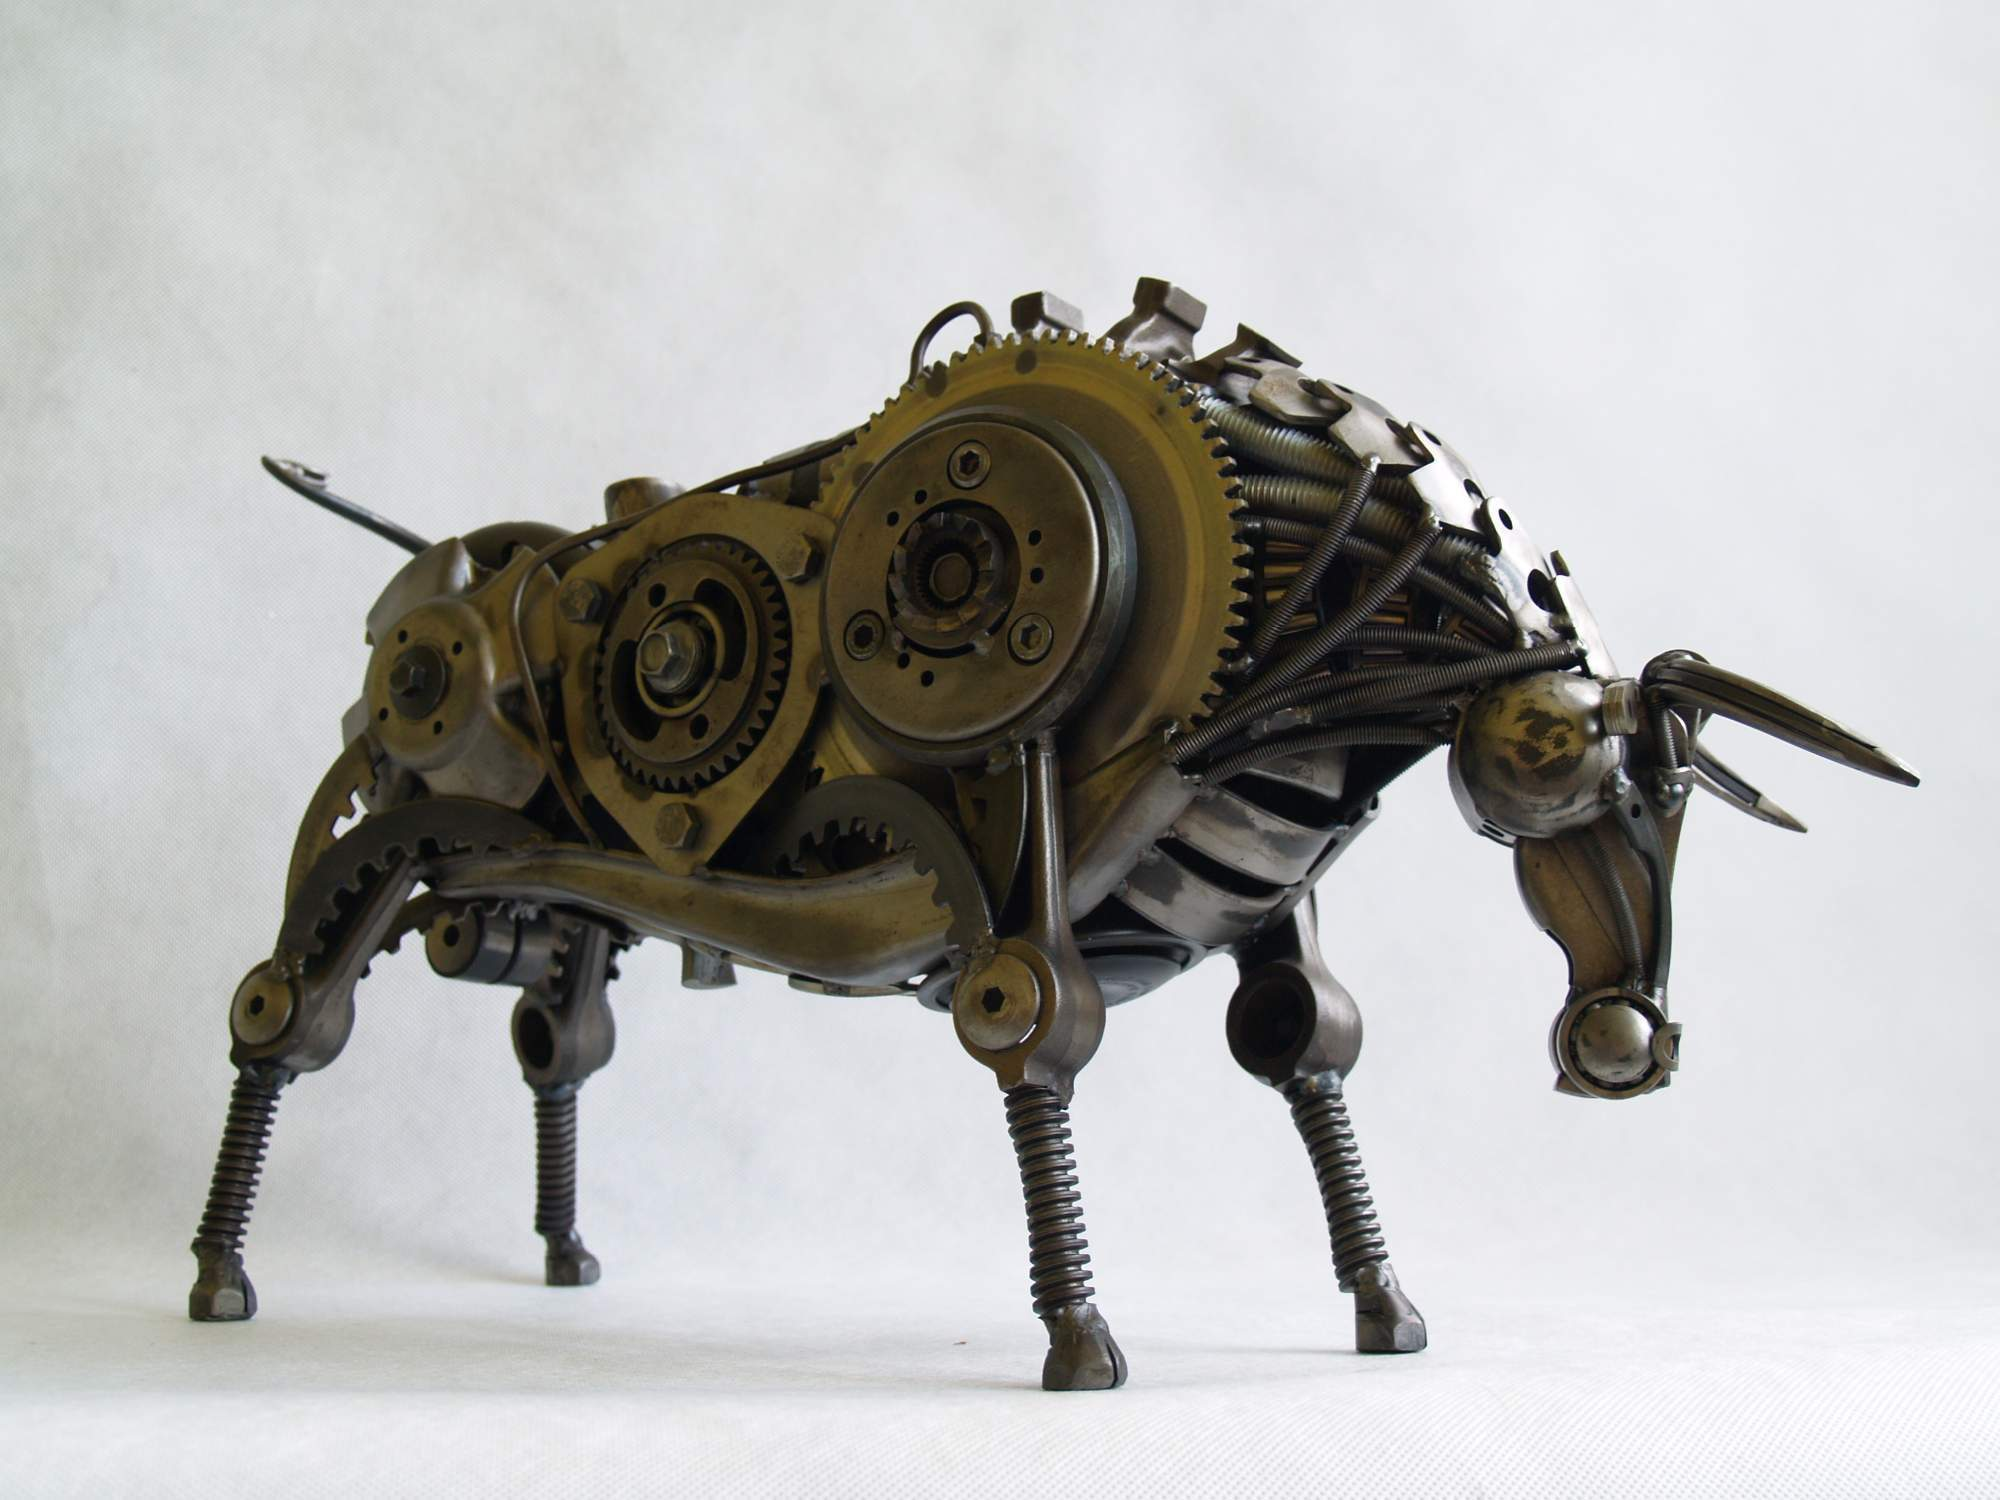 THE BULL sculpture made of scrap metal 2